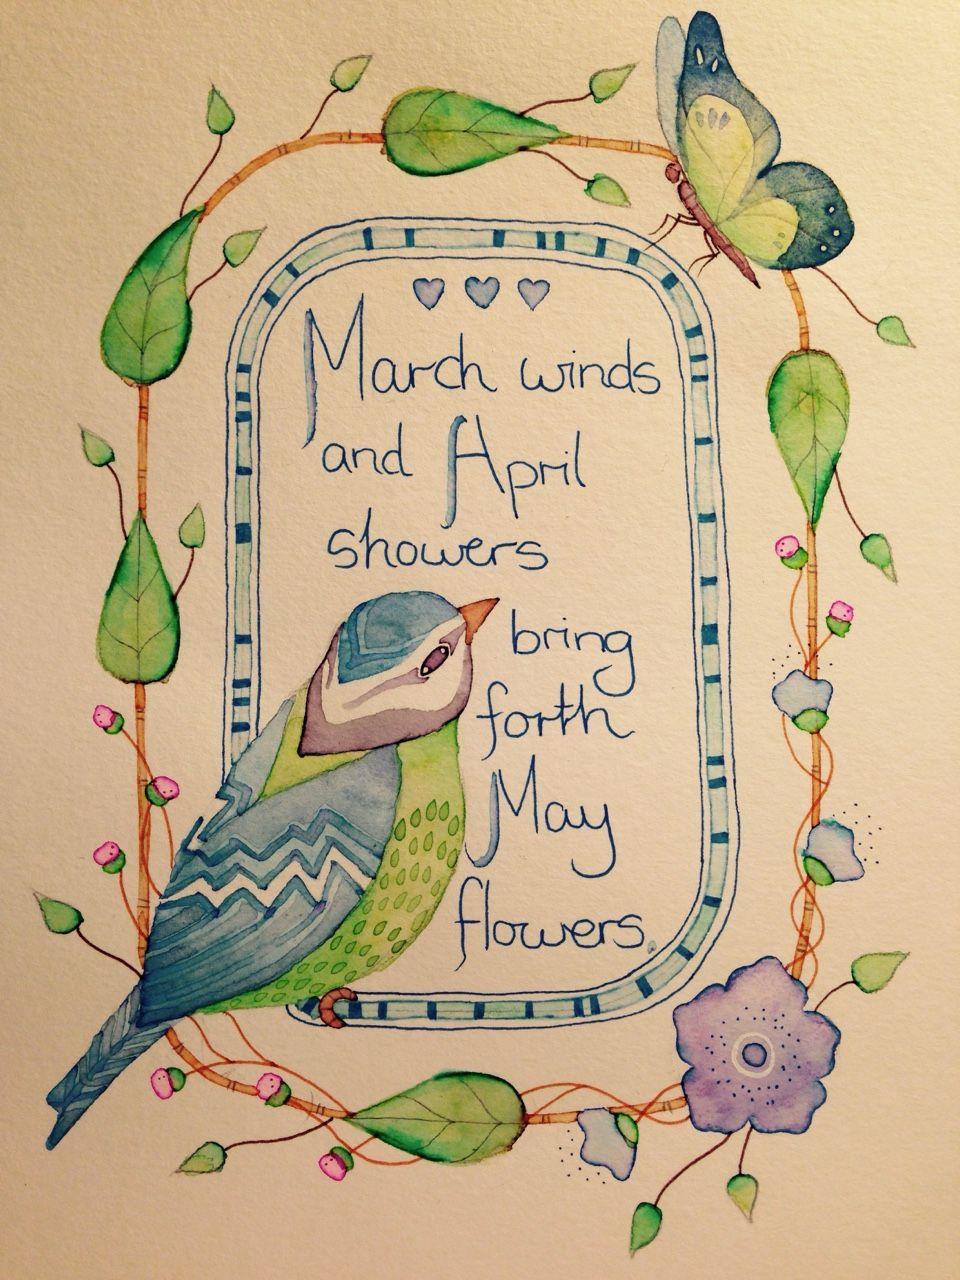 March Winds And April Showers Bring Forth May Flowers Old